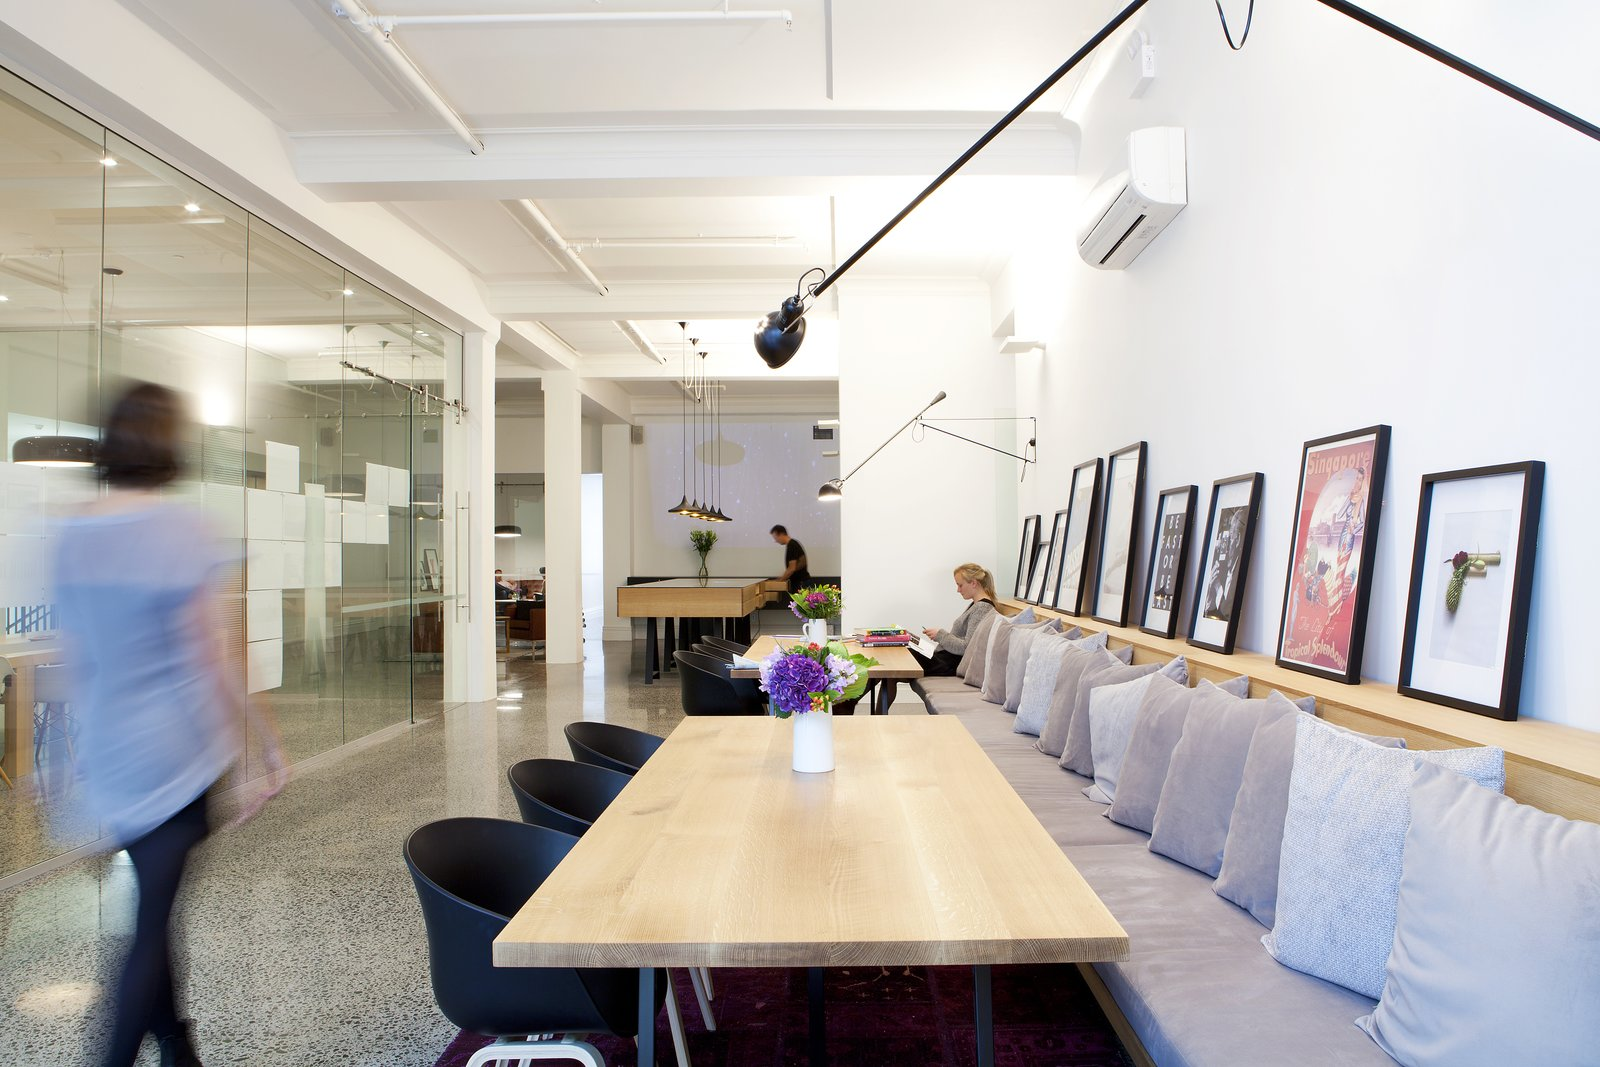 Photo 1 of 5 in Spotlight on Work Spaces That Double as Art Galleries